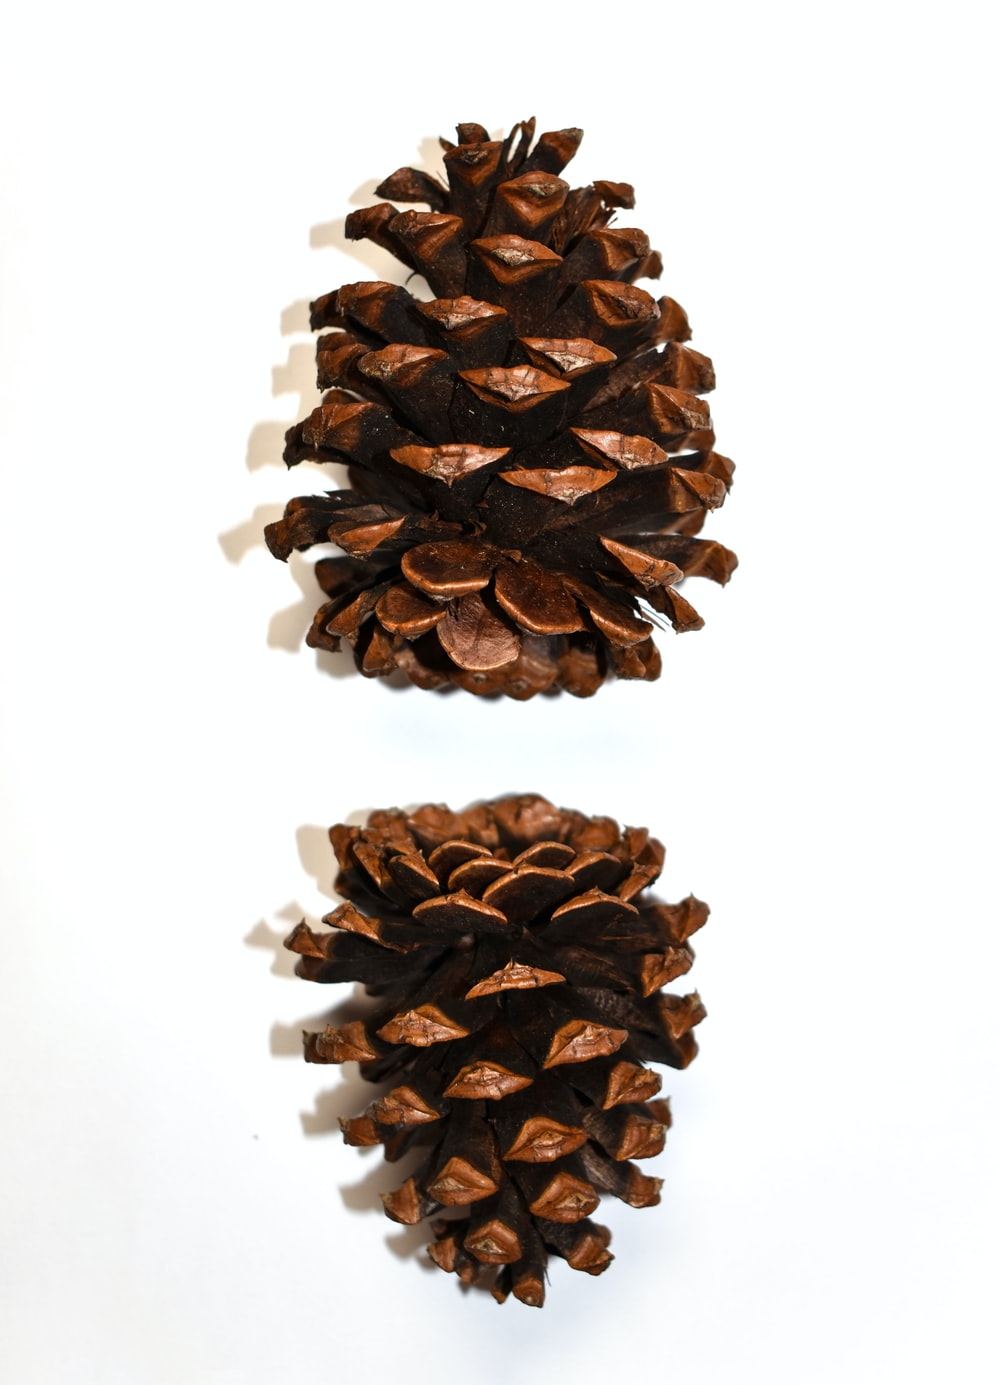 brown pine cone on white background